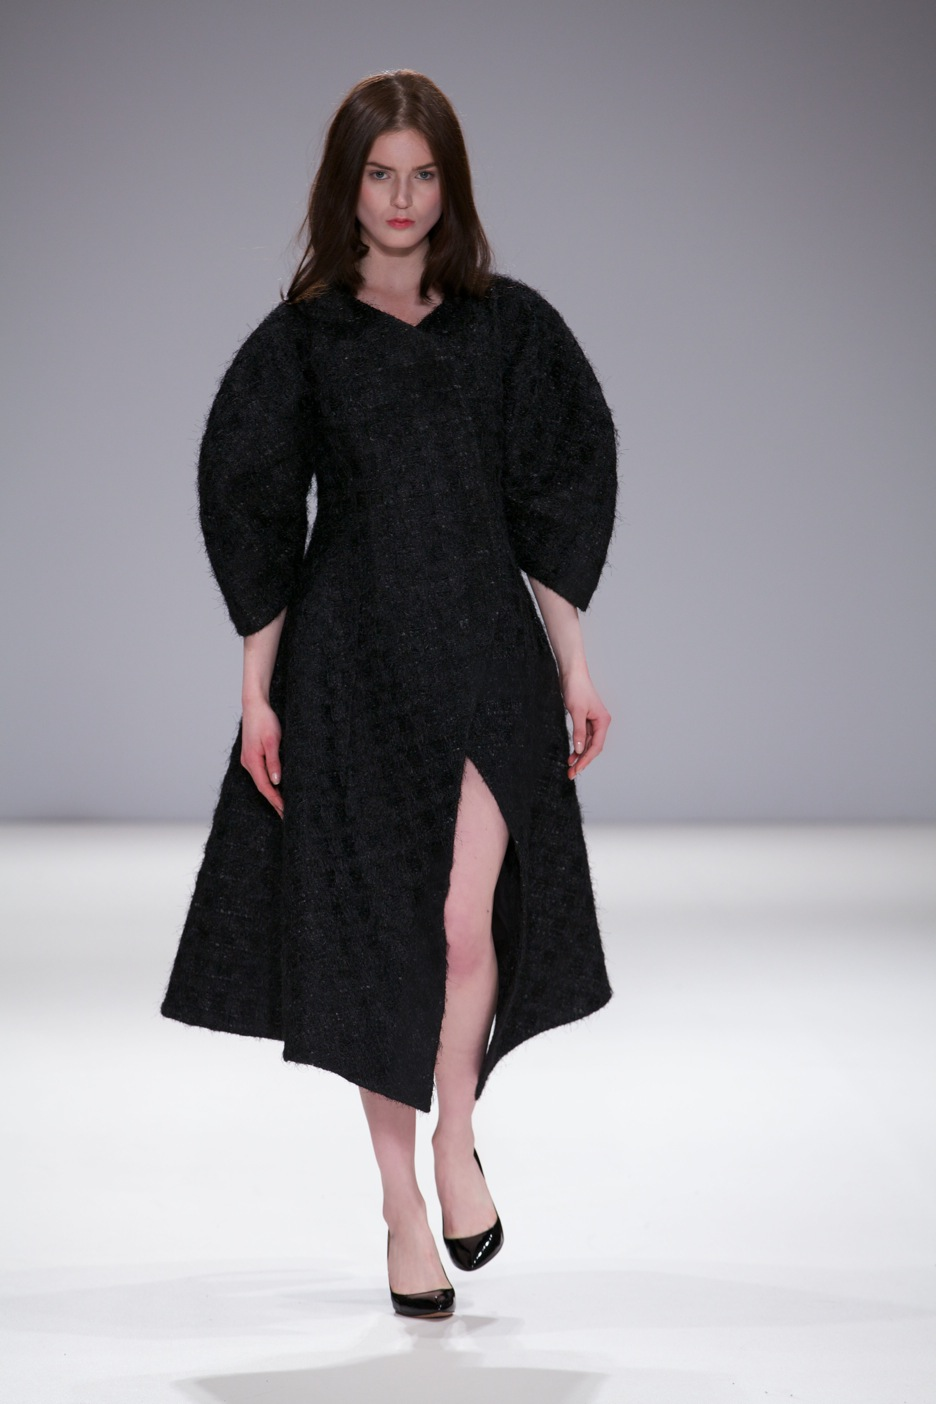 Kiev Fashion Days A-W 2014 (c) Marc aitken 2014  20.jpg